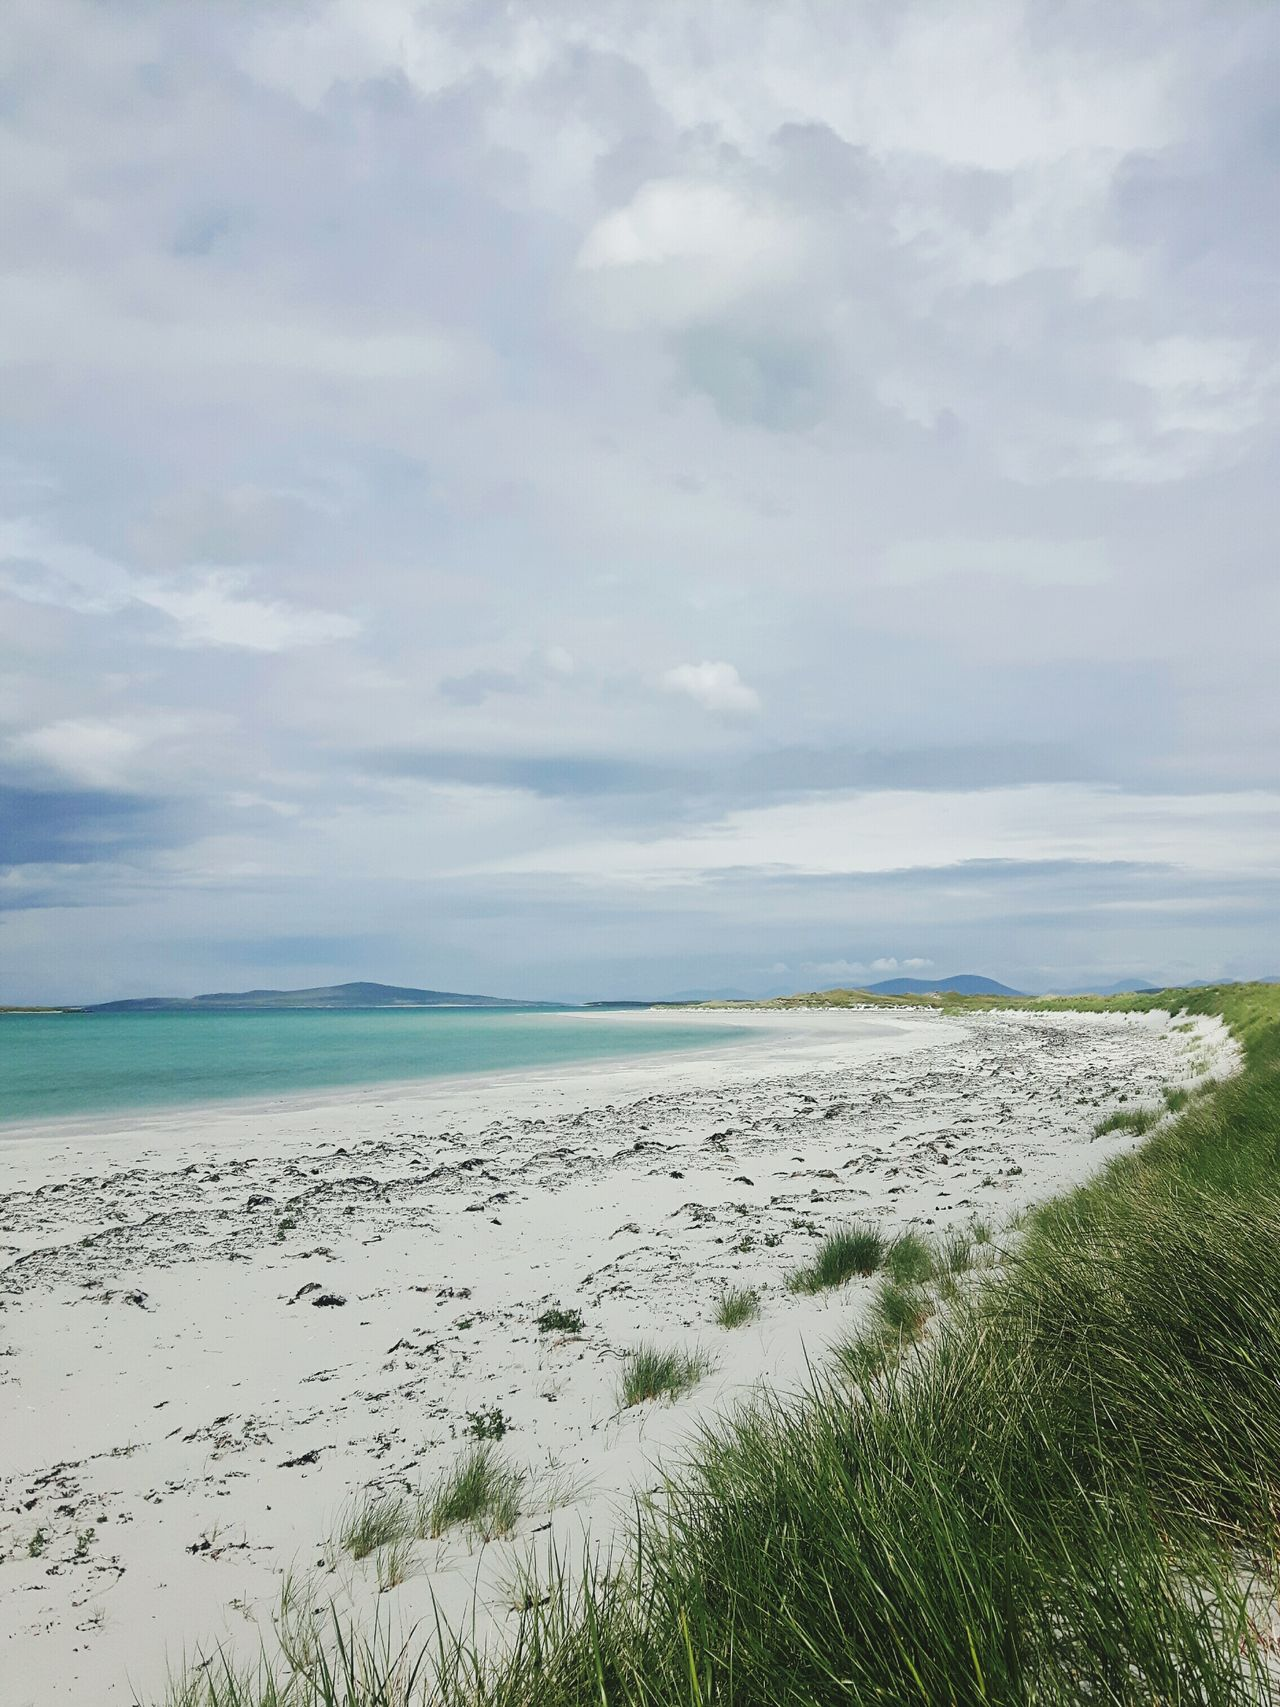 Sea Beach Nature Scottishbeach Clachan Clachansands Traigh Lingeigh Uist Isleofuist Dramatic SkyBeauty In Nature Day Landscape Grass Pastel Colored Sky No People Scottish Isles Hebridies The Great Outdoors - 2017 EyeEm Awards EyeEmNewHere Scotlandlover Scotlandsbeauty Westernisles Outerhebrides Live For The Story